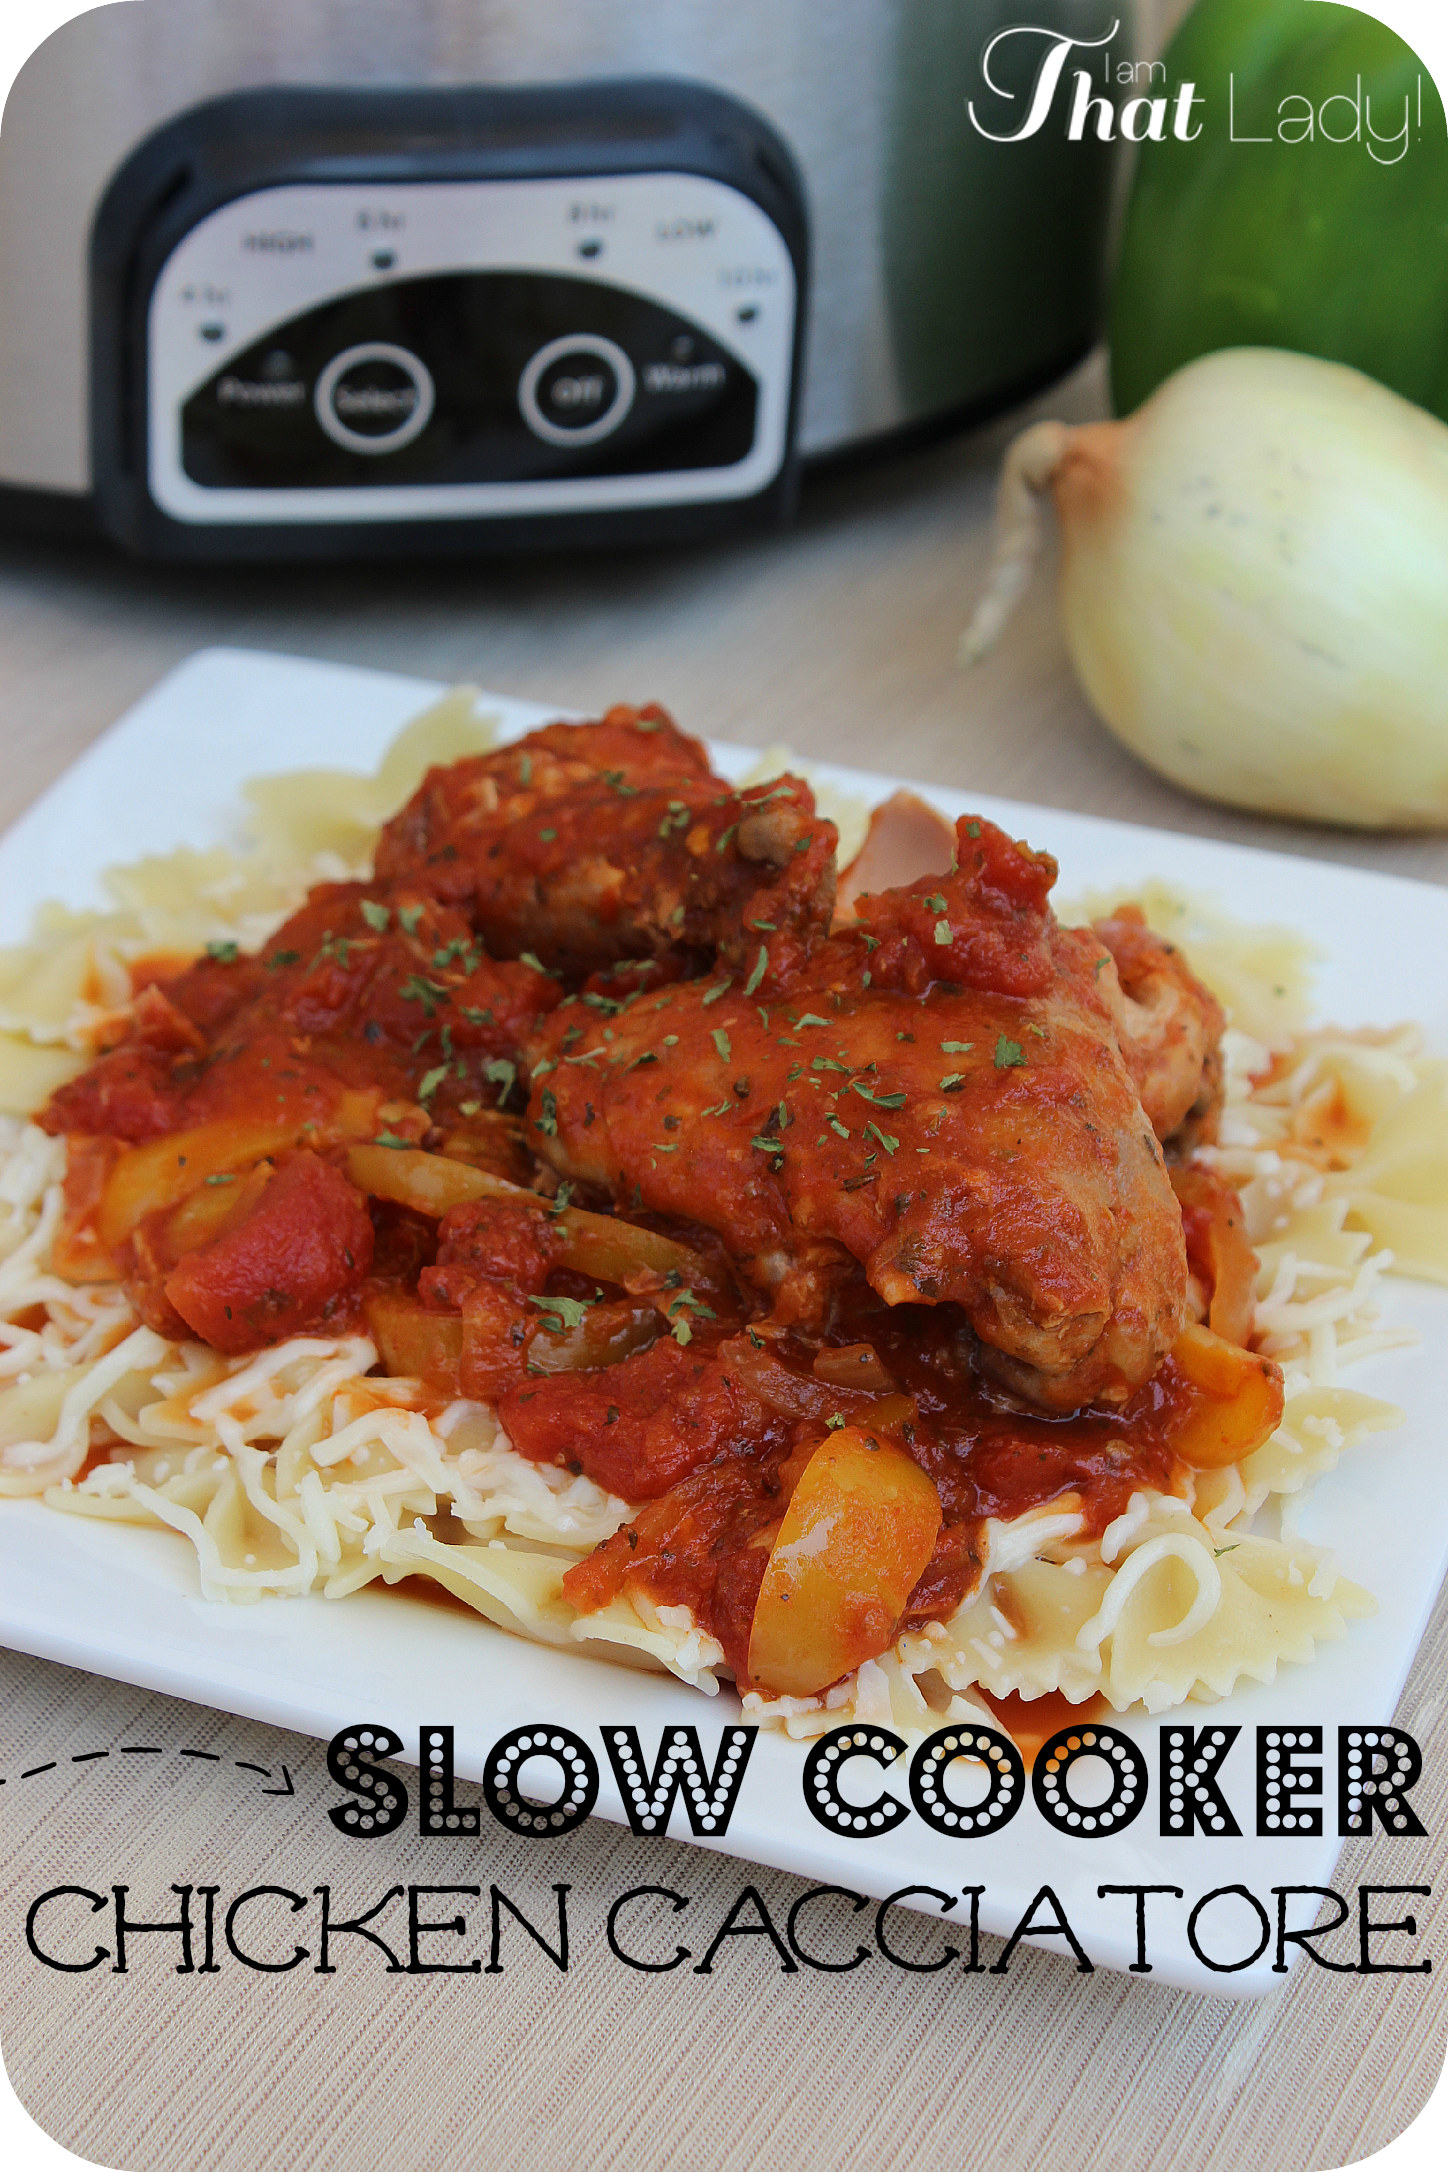 Cacciatore Chicken Recipe - Easy and delicious!